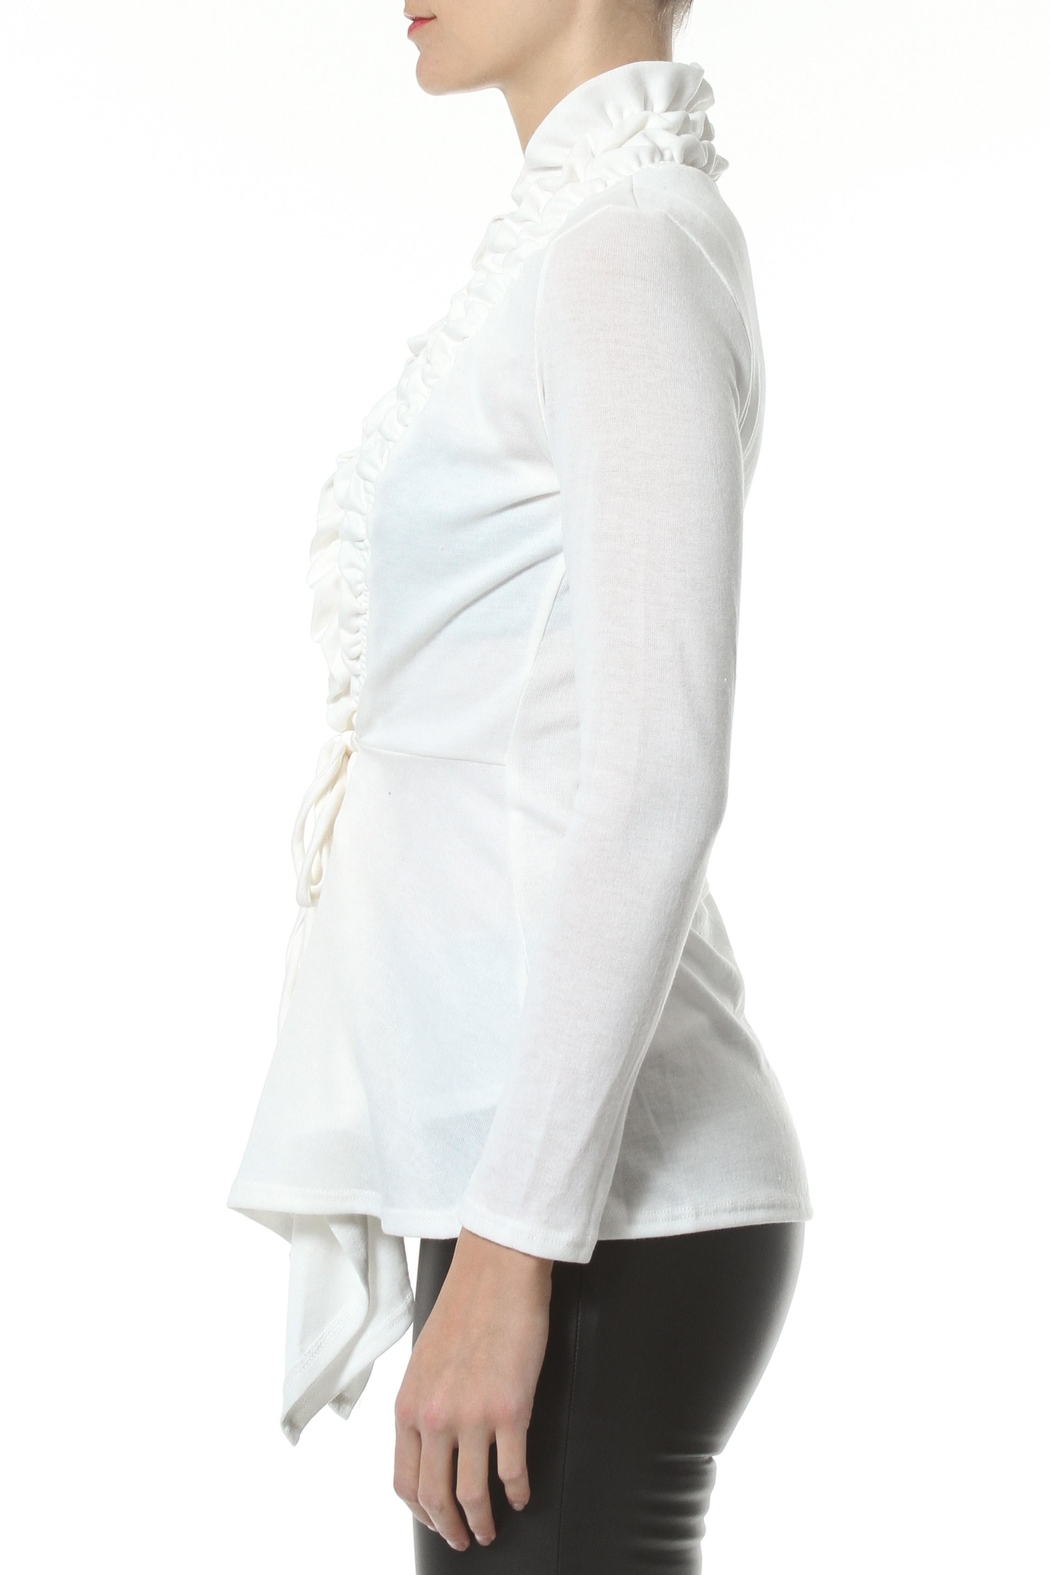 Madonna & Co Textured Trim Cardigan - Front Full Image